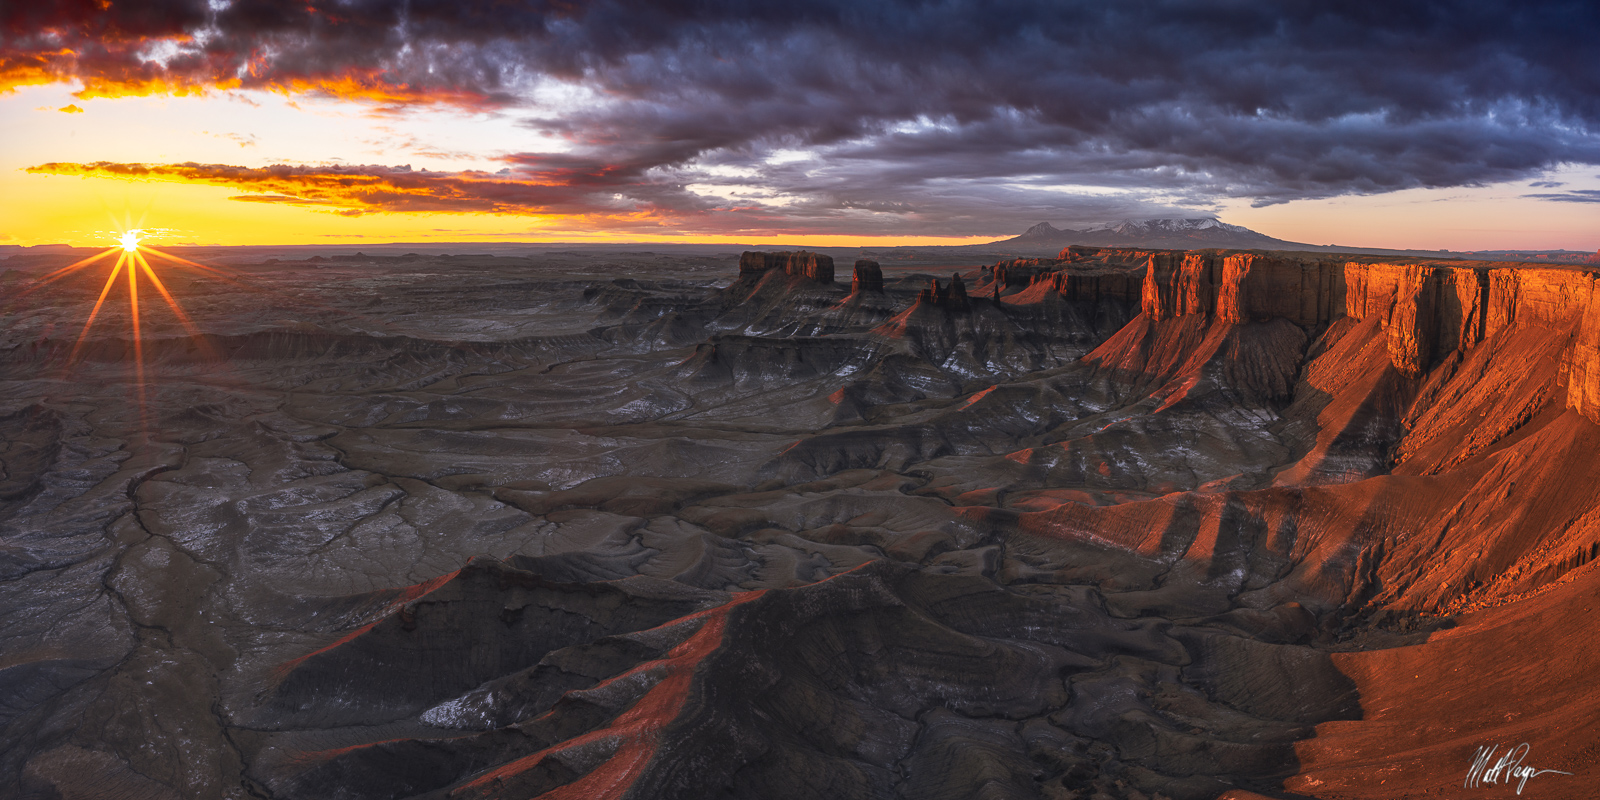 Clouds, Glow, Landscape, March, Panoramic, Rock, Sand, Southwest, Spring, Sunrise, Sunstar, Utah, desert, geologic, 2x1, photo